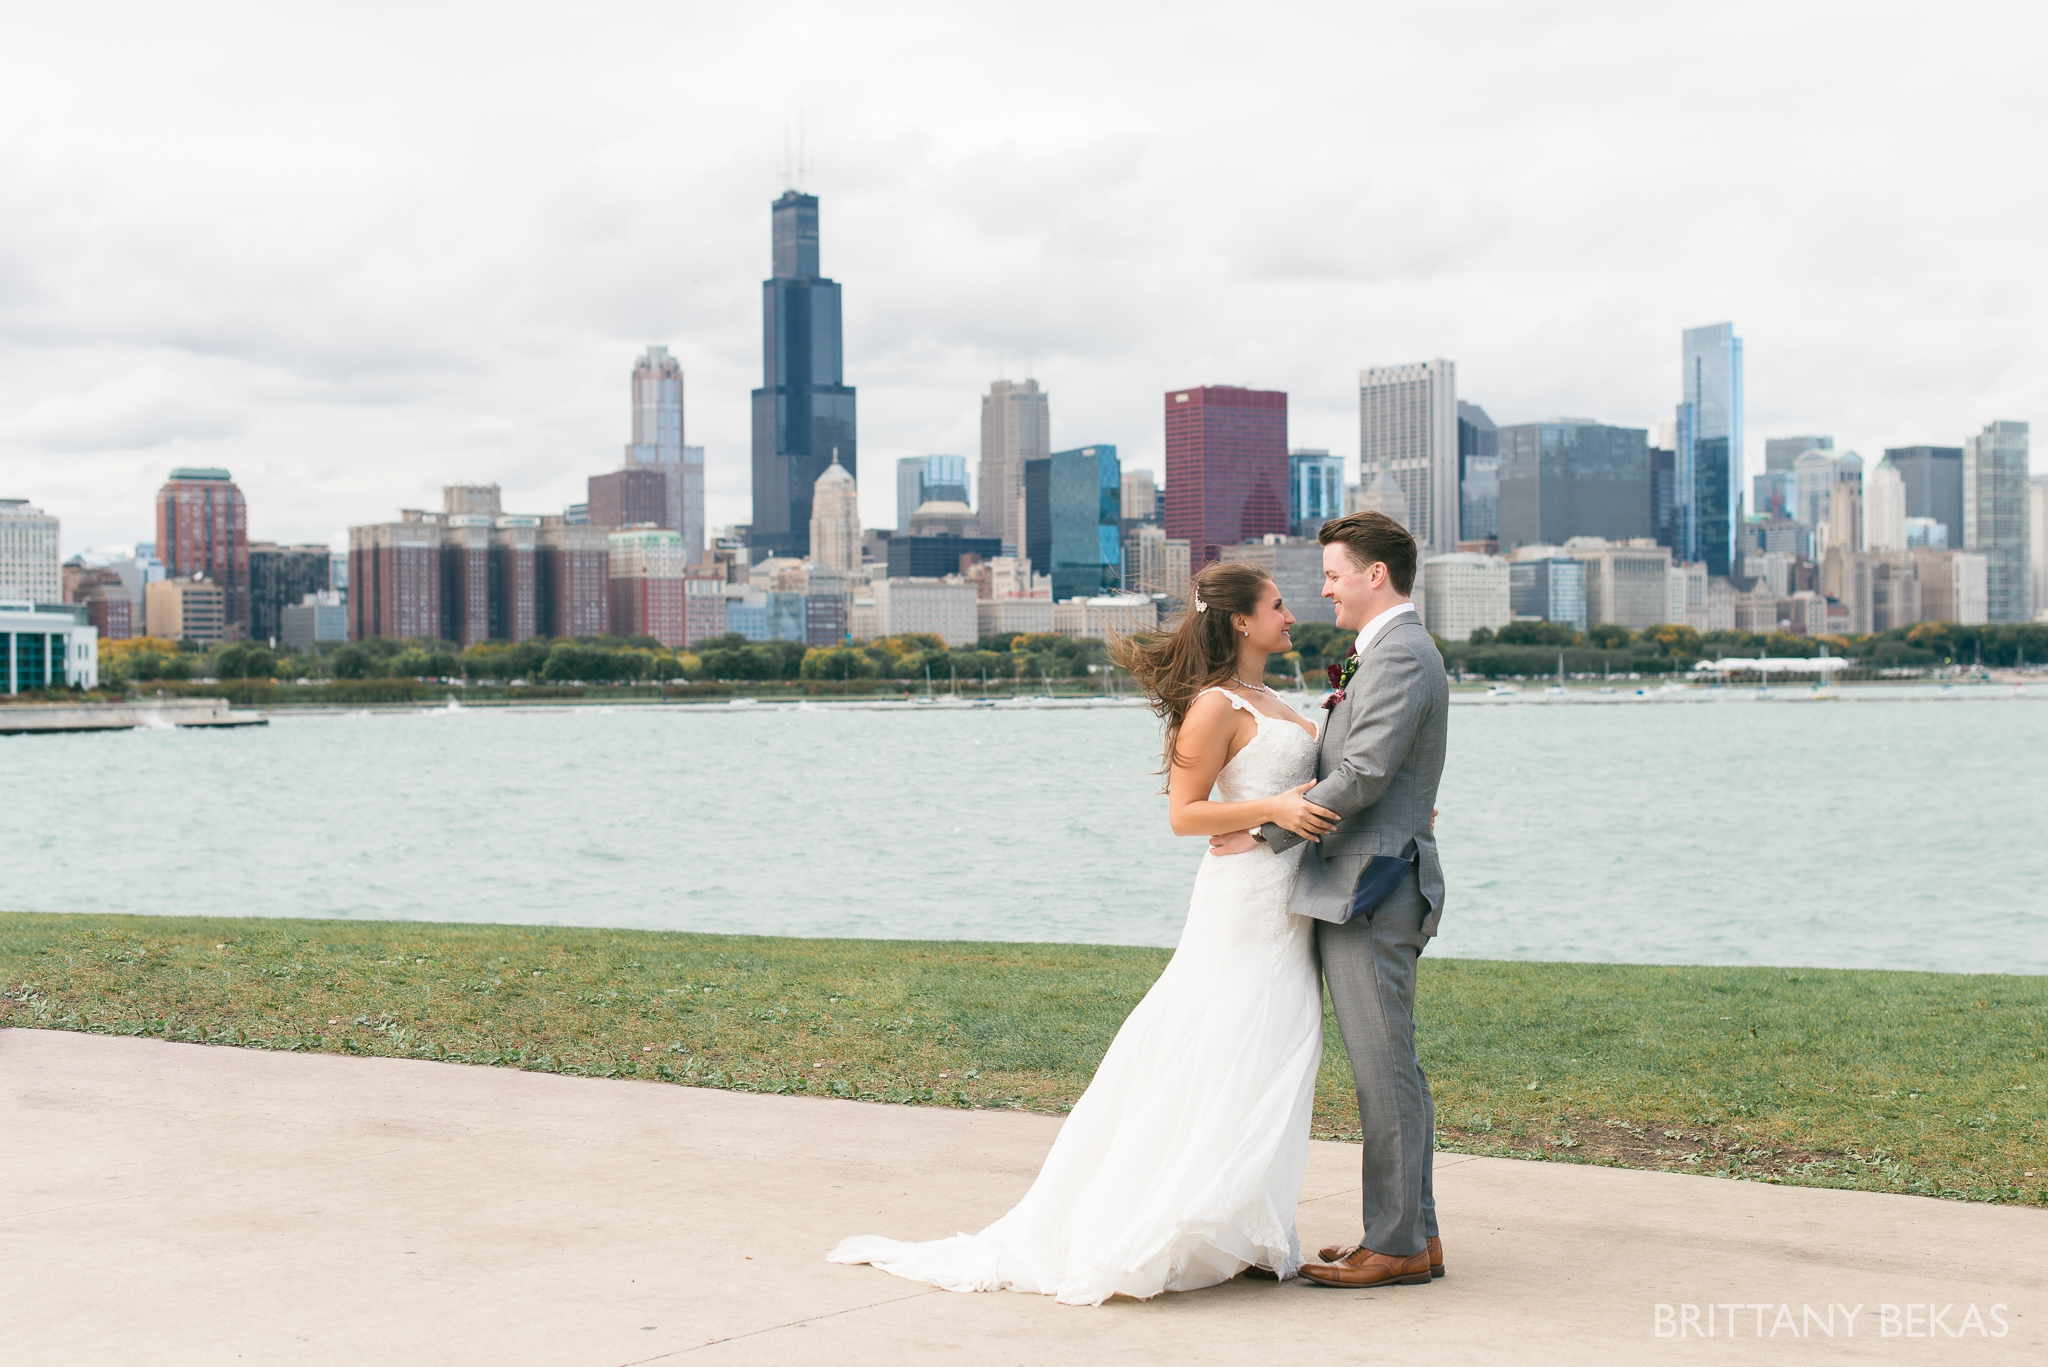 Chicago Wedding Garfield Park Conservatory Wedding Photos - Brittany Bekas Photography_0016